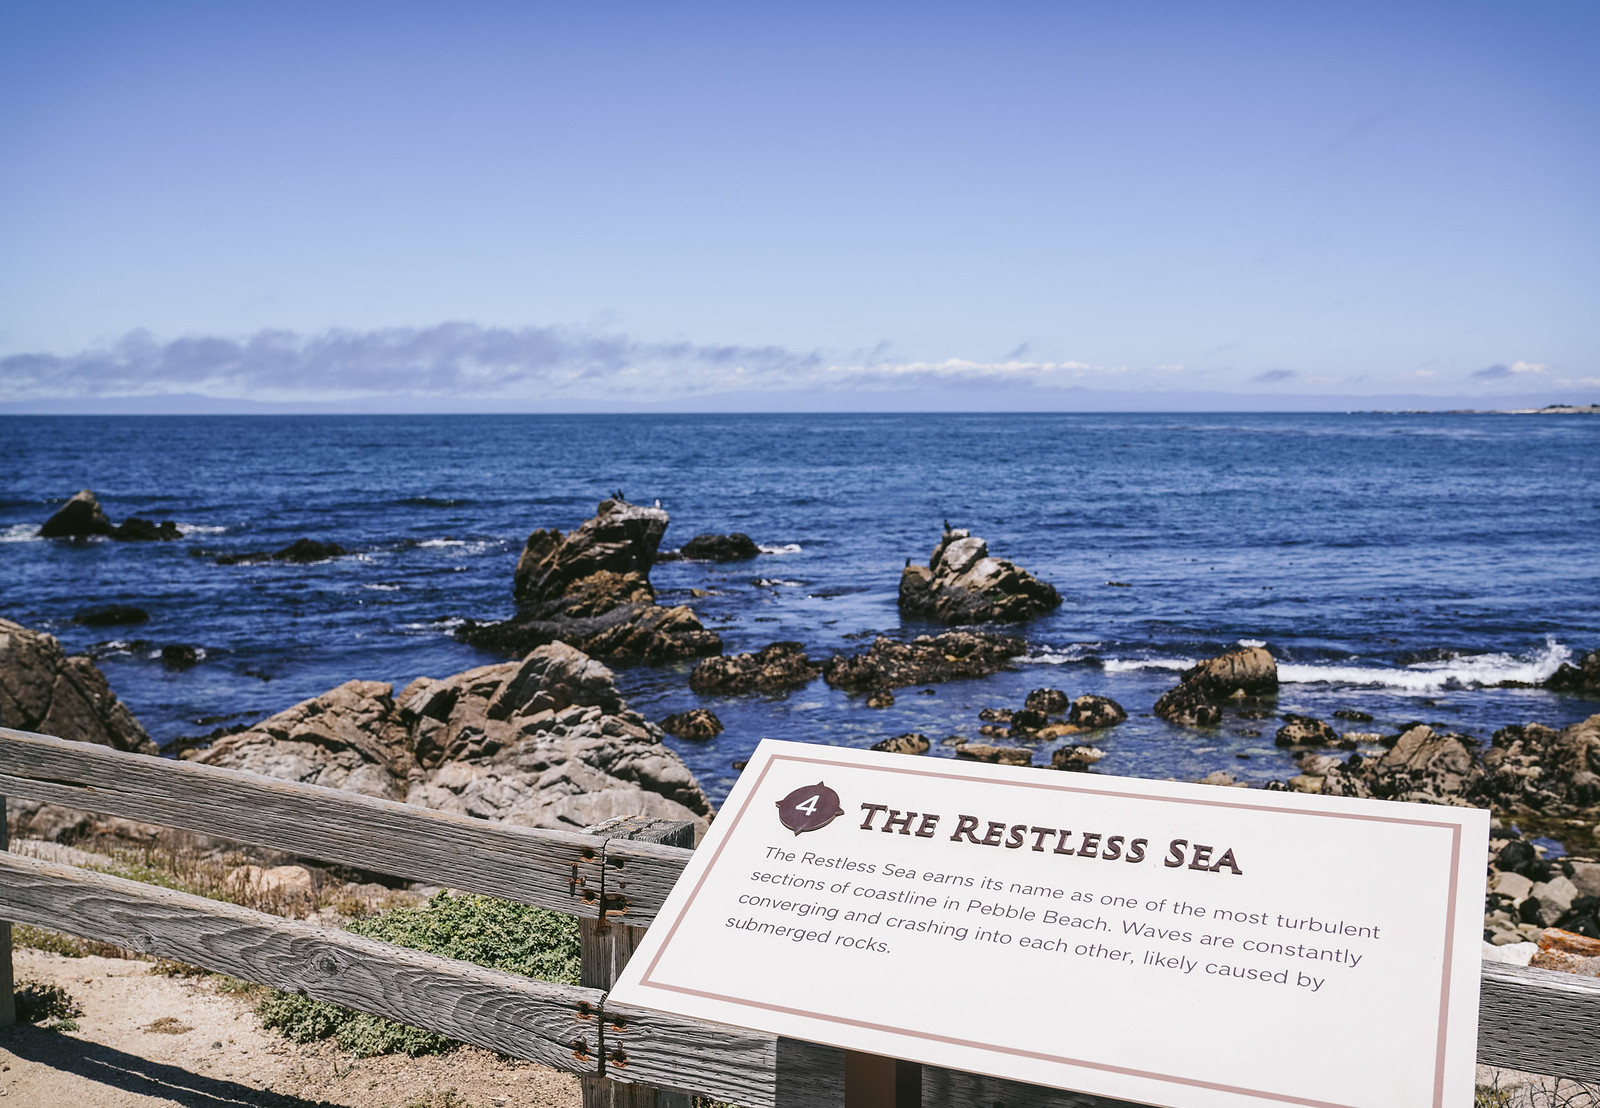 the restless sea at Pebble Beach